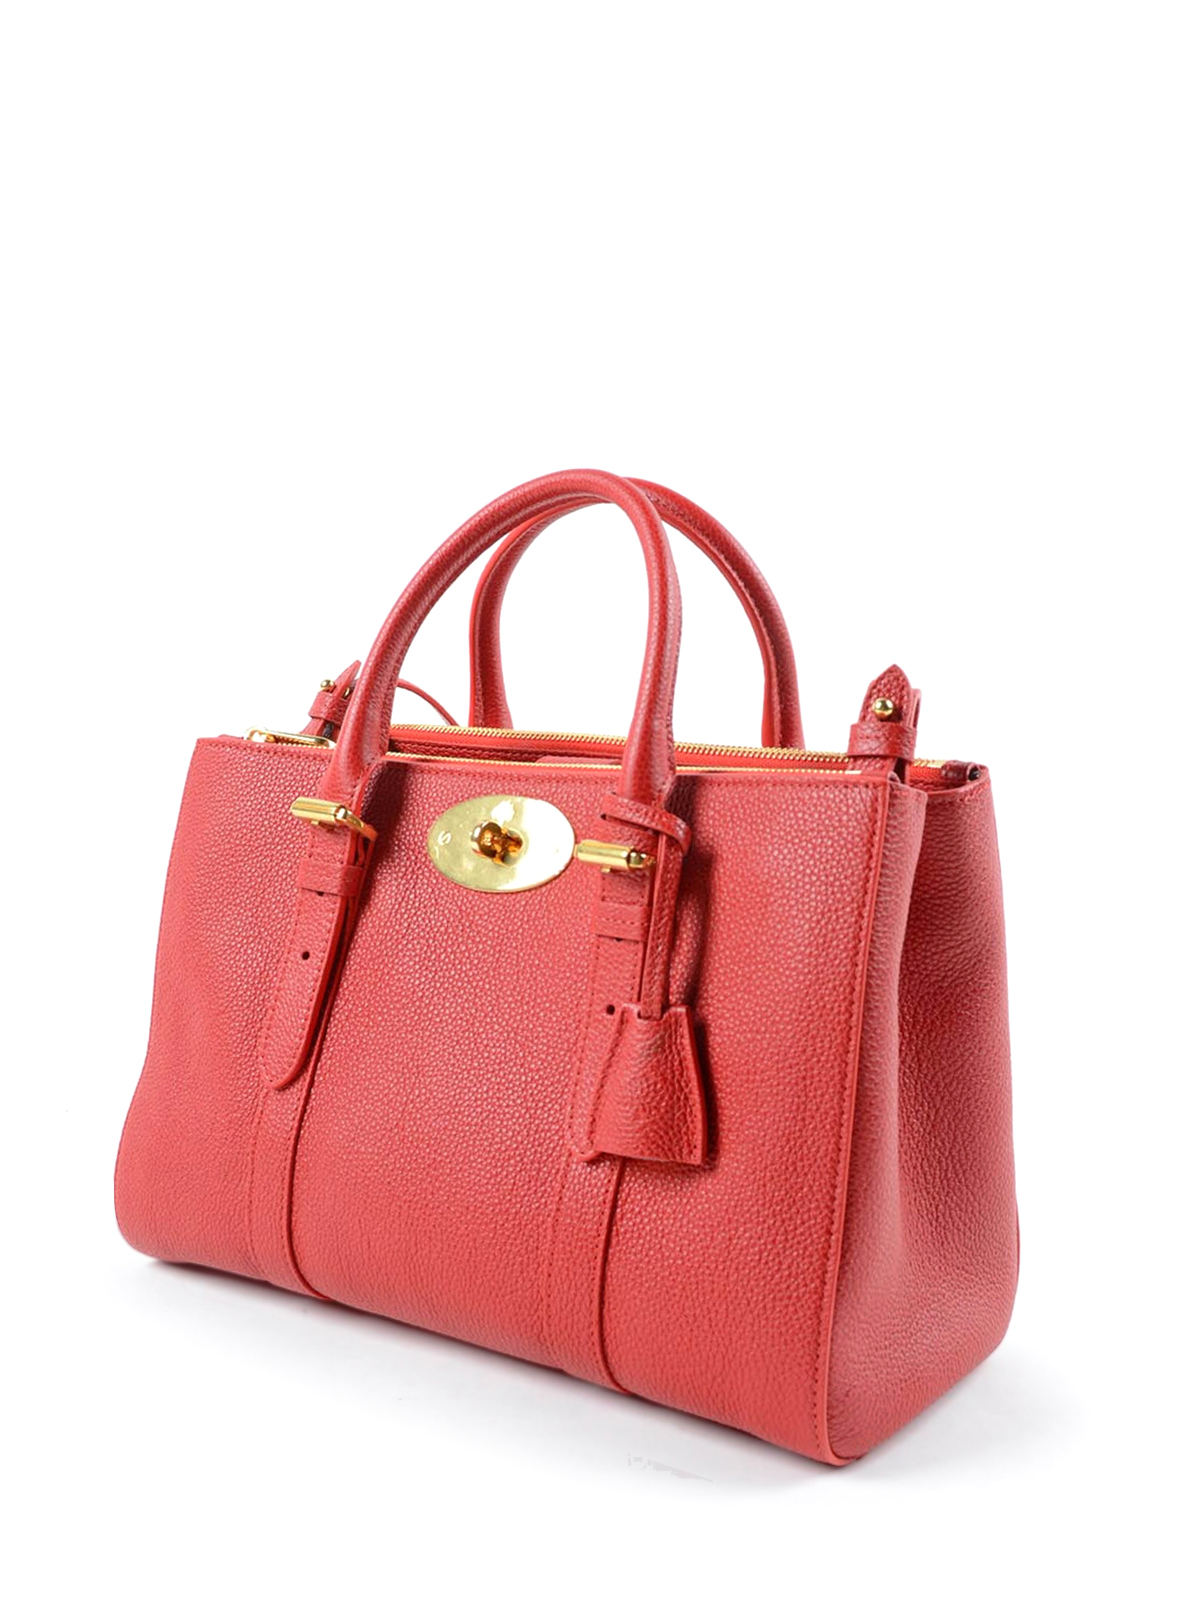 ... australia mulberry totes bags online small bayswater double zip tote  4aeb4 b13a1 ... 430f55e72c855